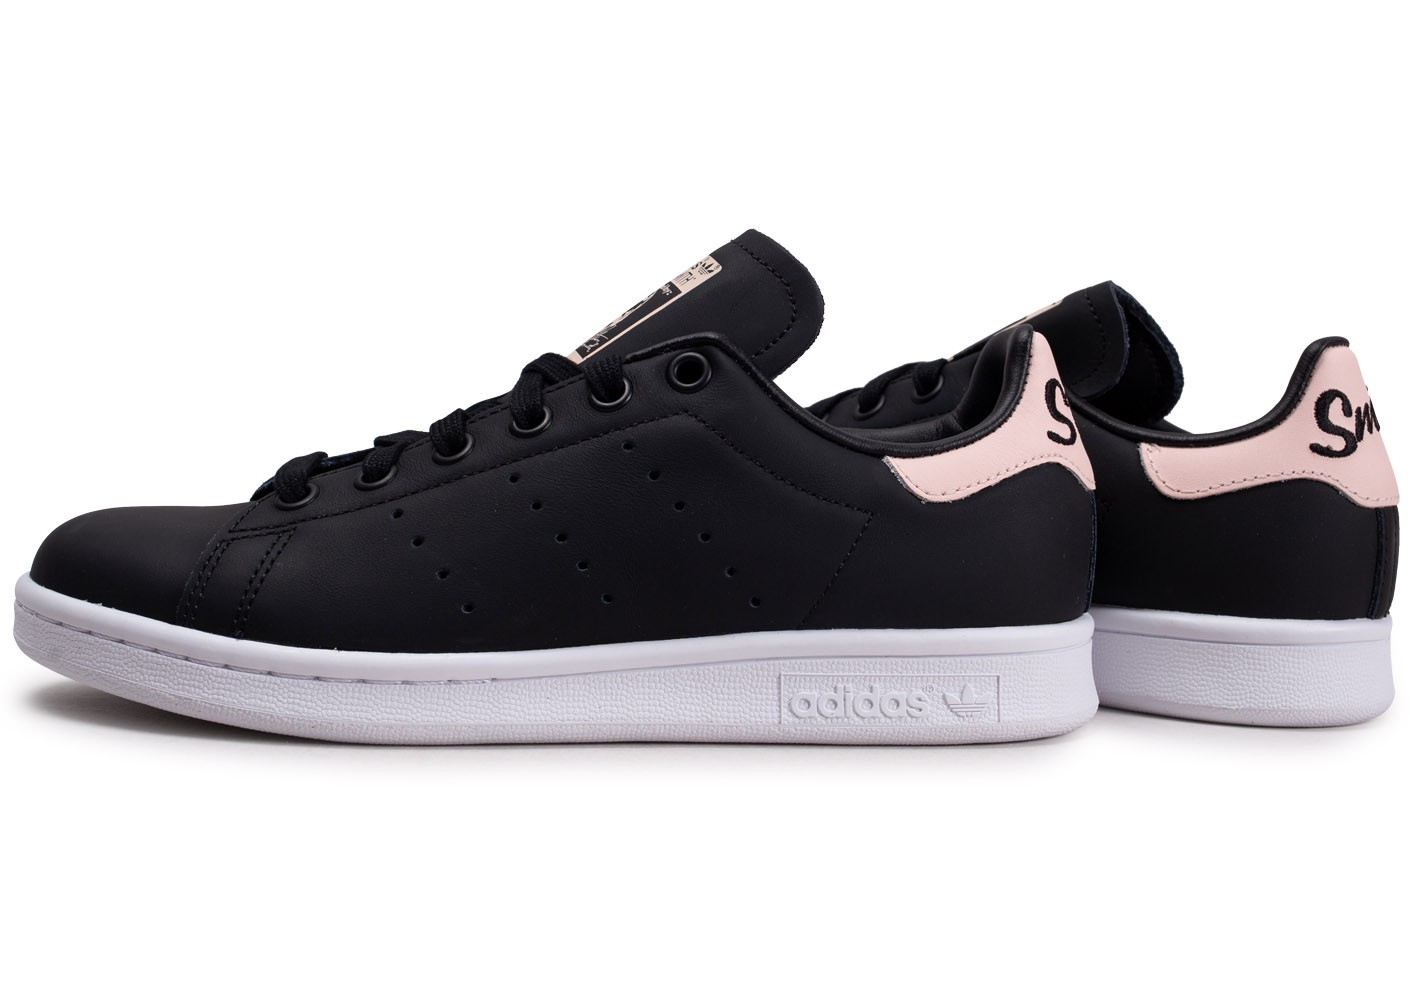 adidas Stan Smith noire et rose femme - Chaussures adidas ...